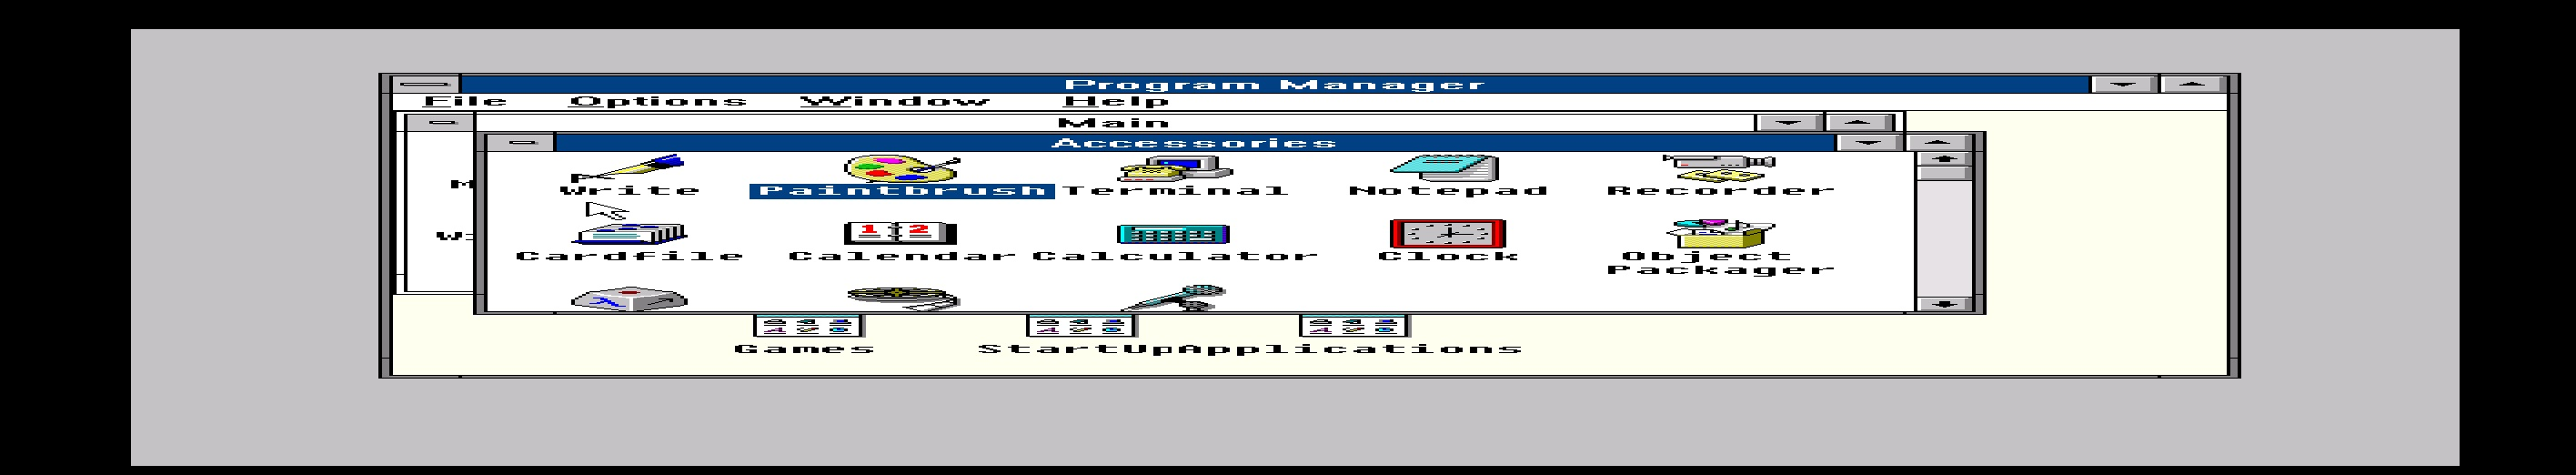 917-Windows 3.1 on 640x480x64K colors.jpg